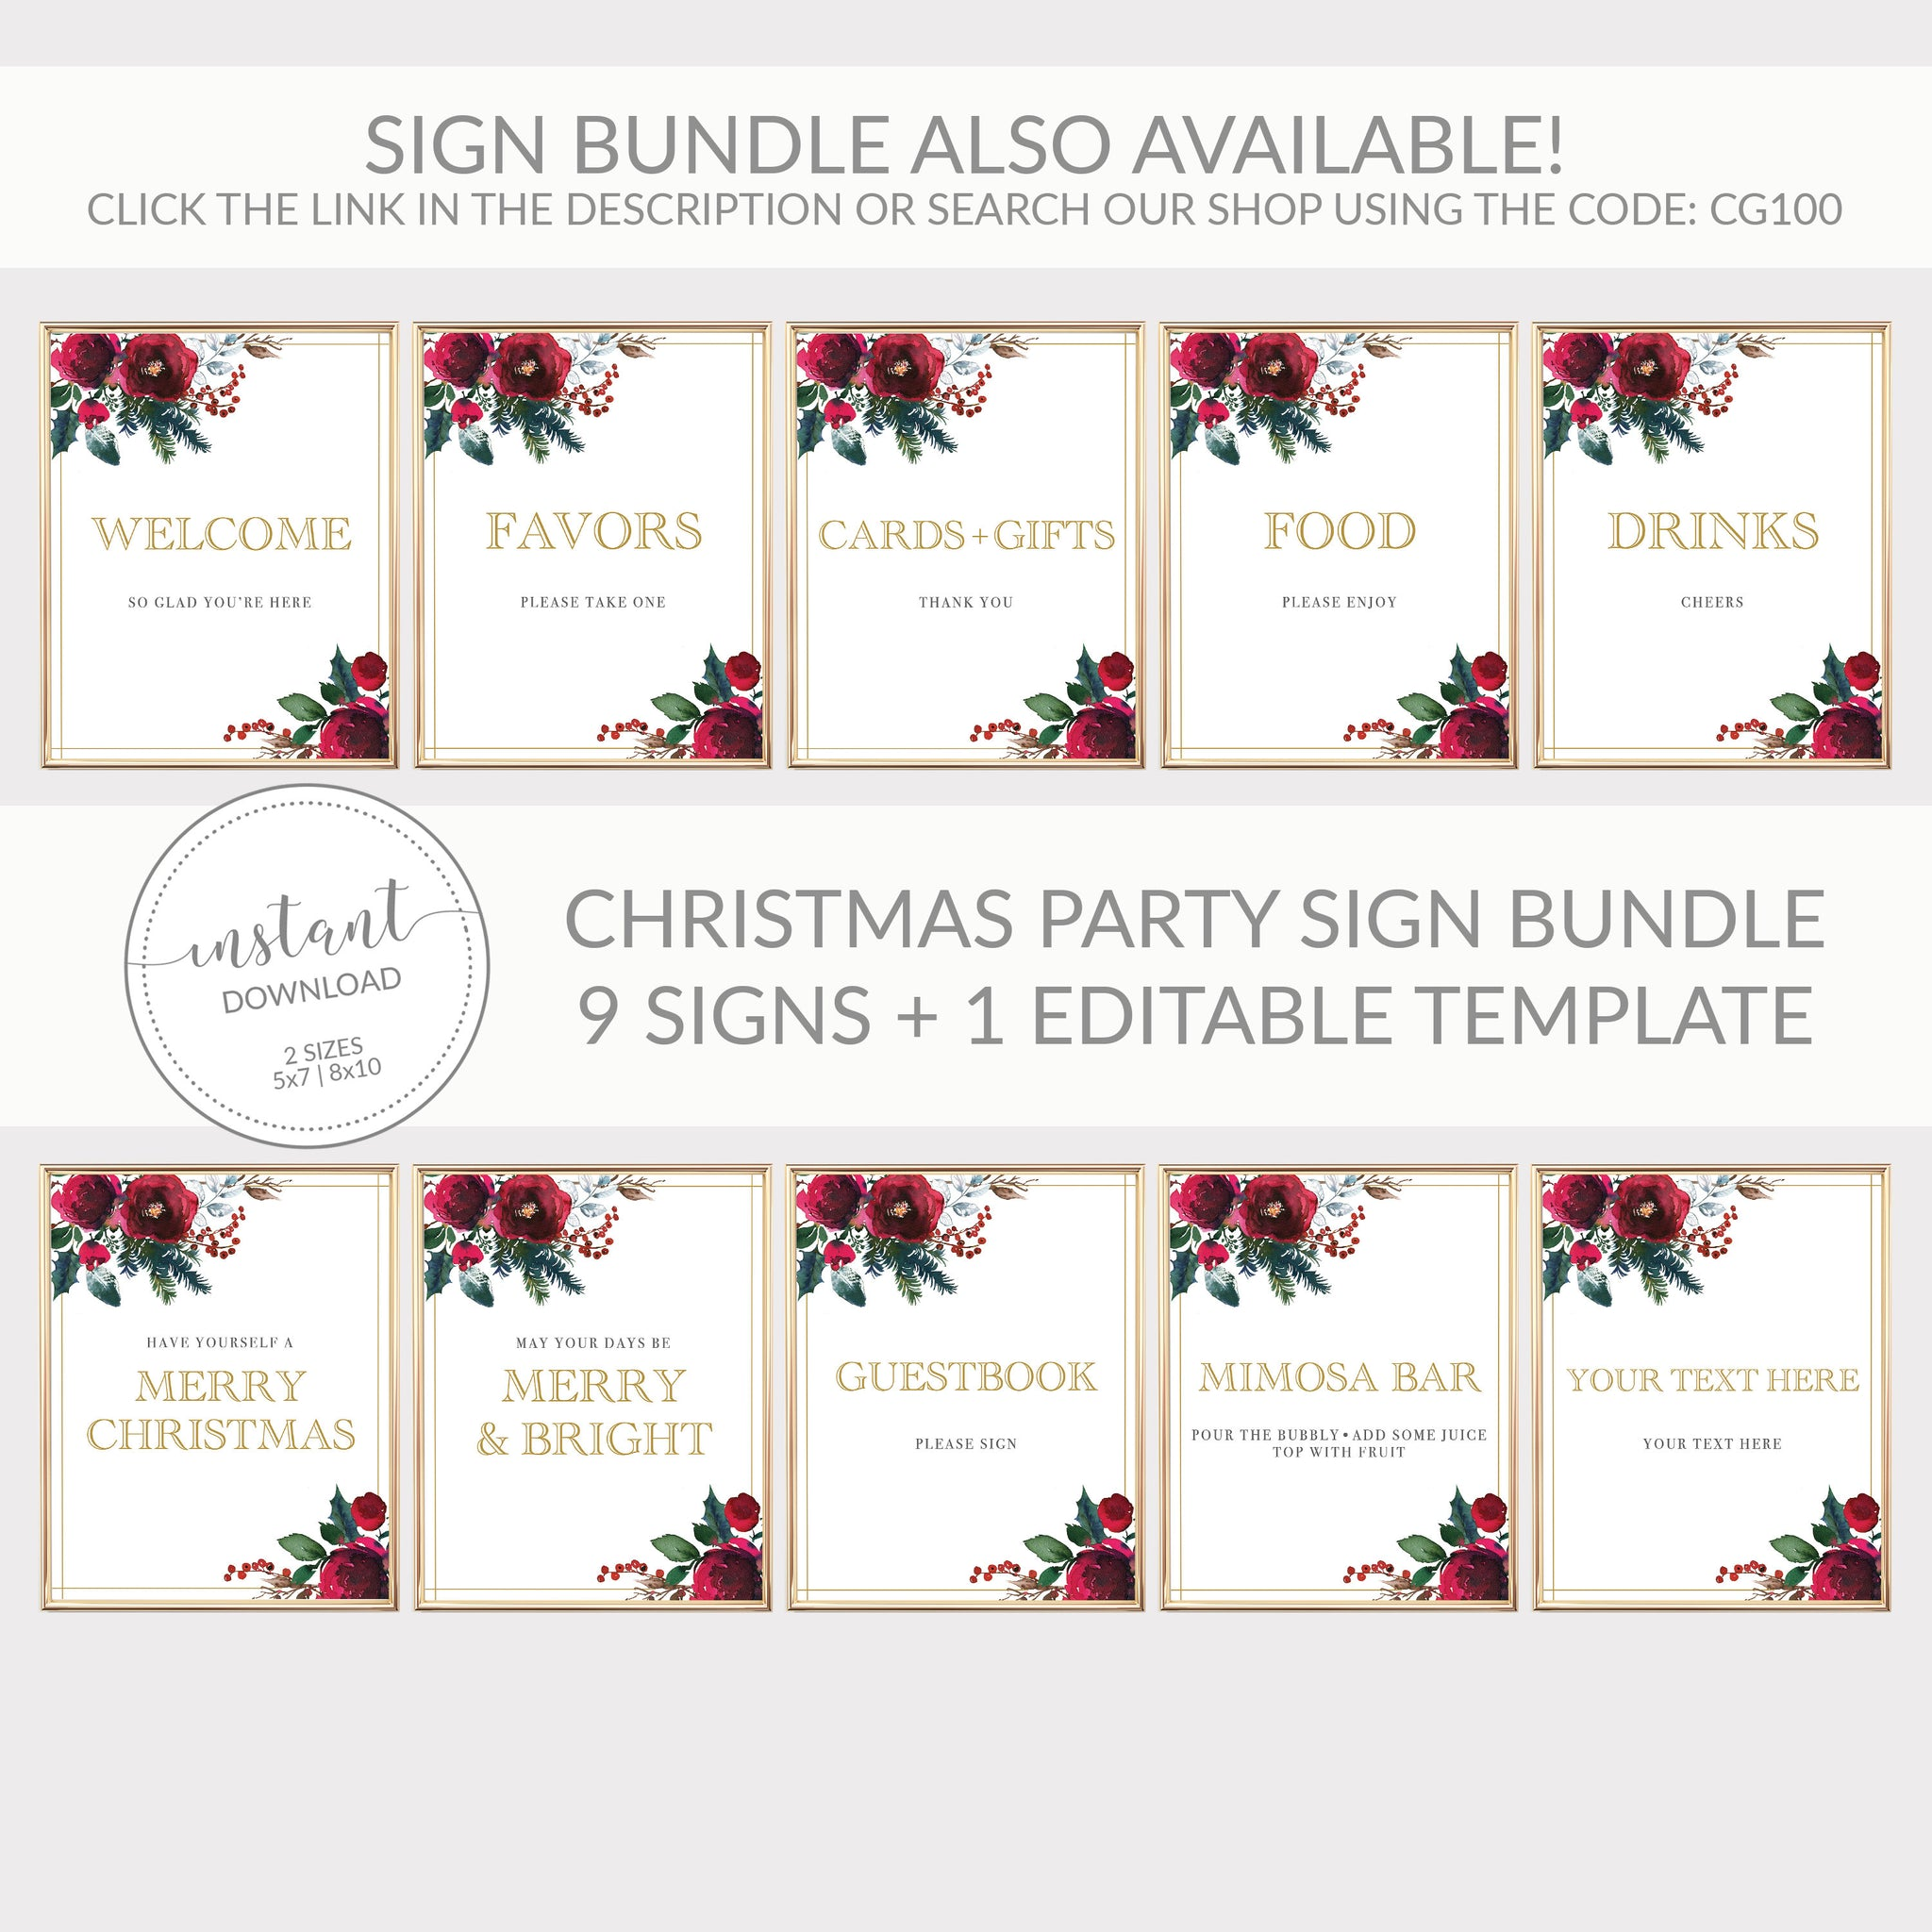 Christmas Menu Template, Christmas Table Decor, Christmas Dinner Menu Printable, Editable DIGITAL DOWNLOAD - CG100 - @PlumPolkaDot